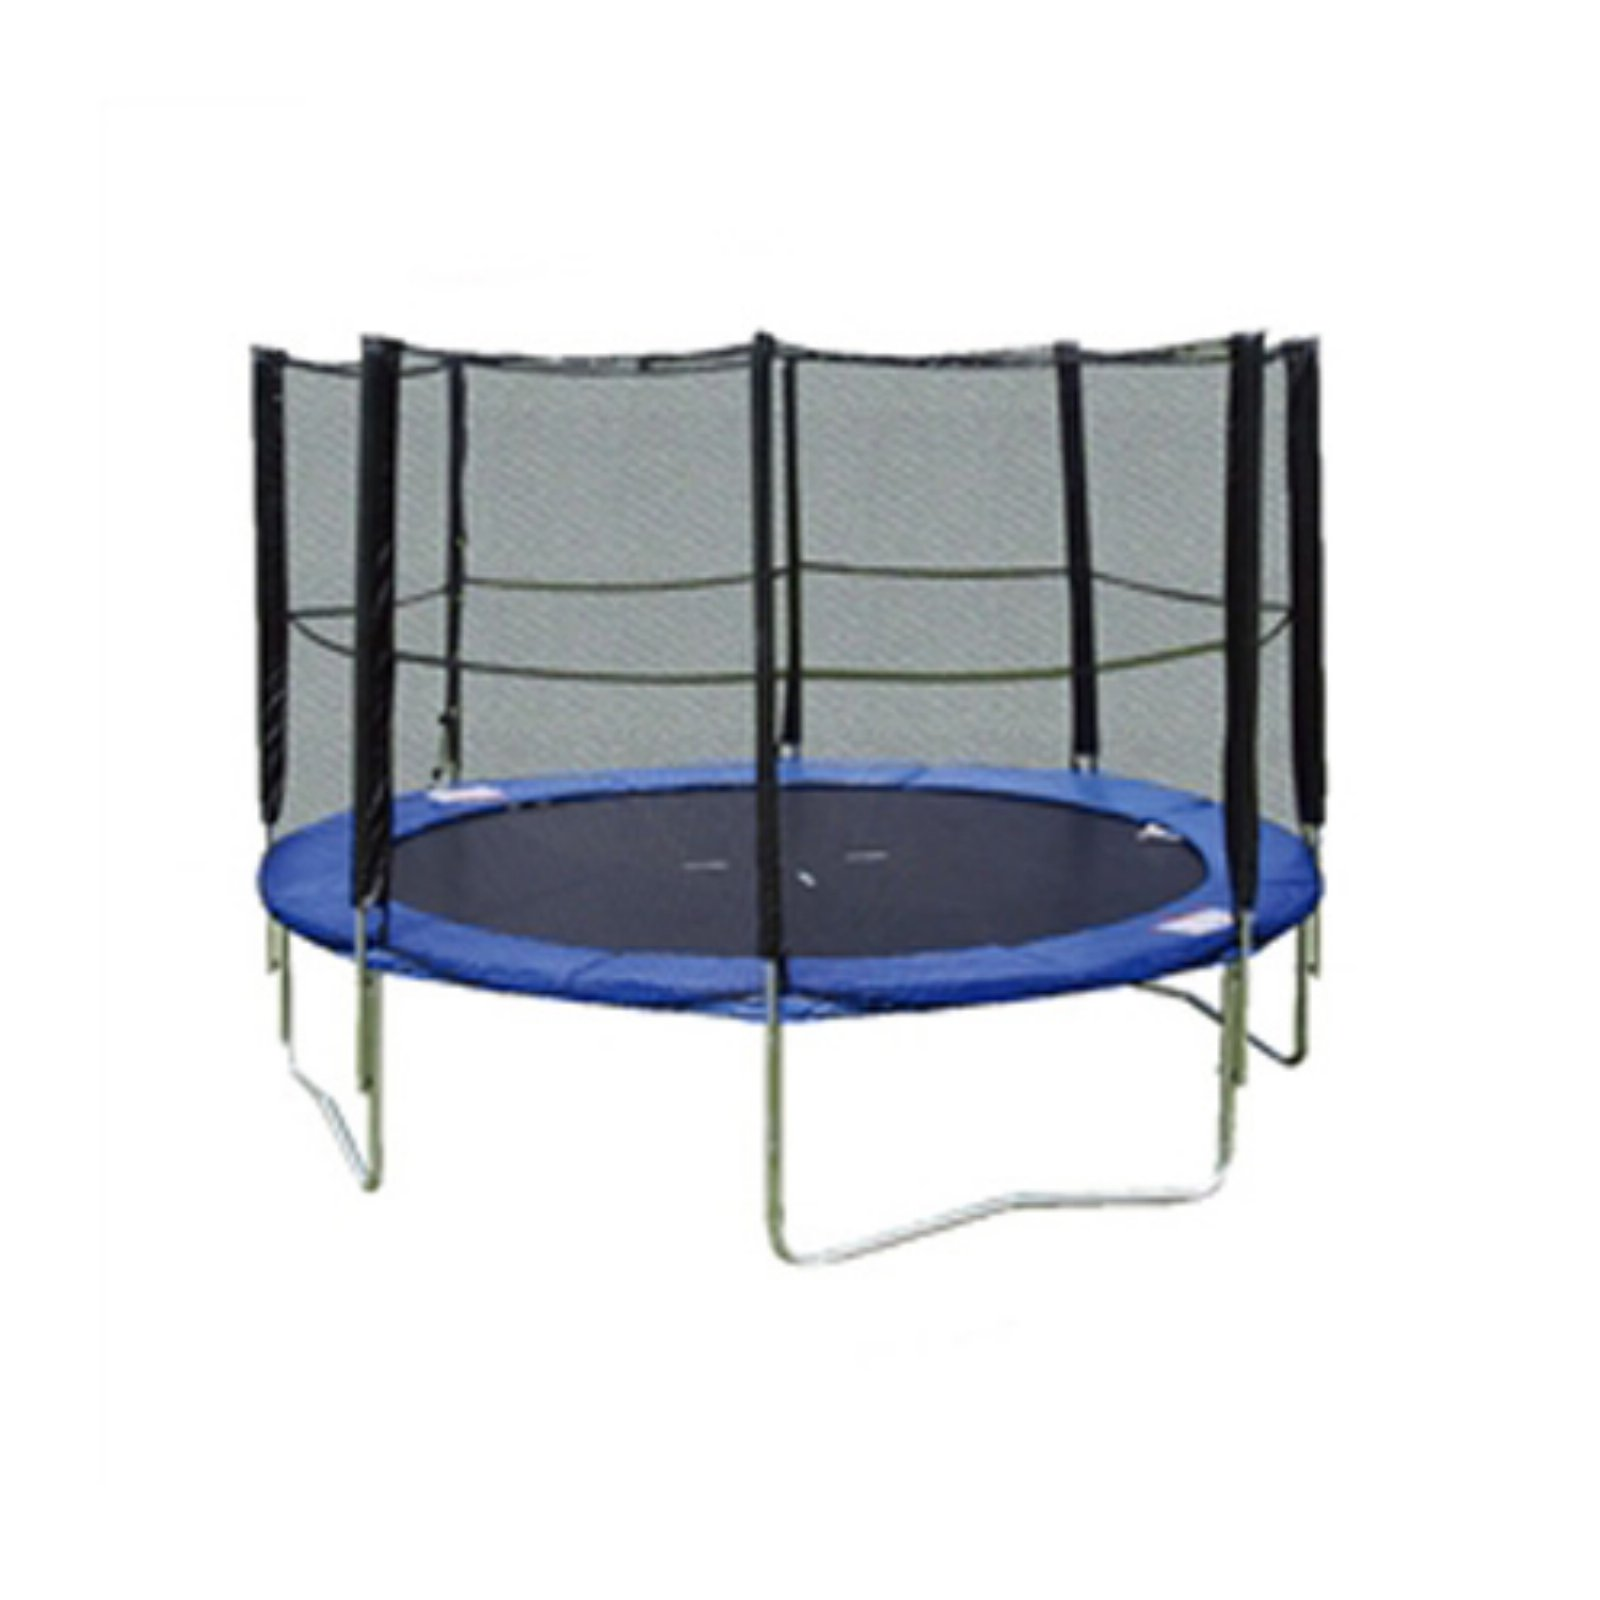 Super Jumper 14 ft. Trampoline with Enclosure